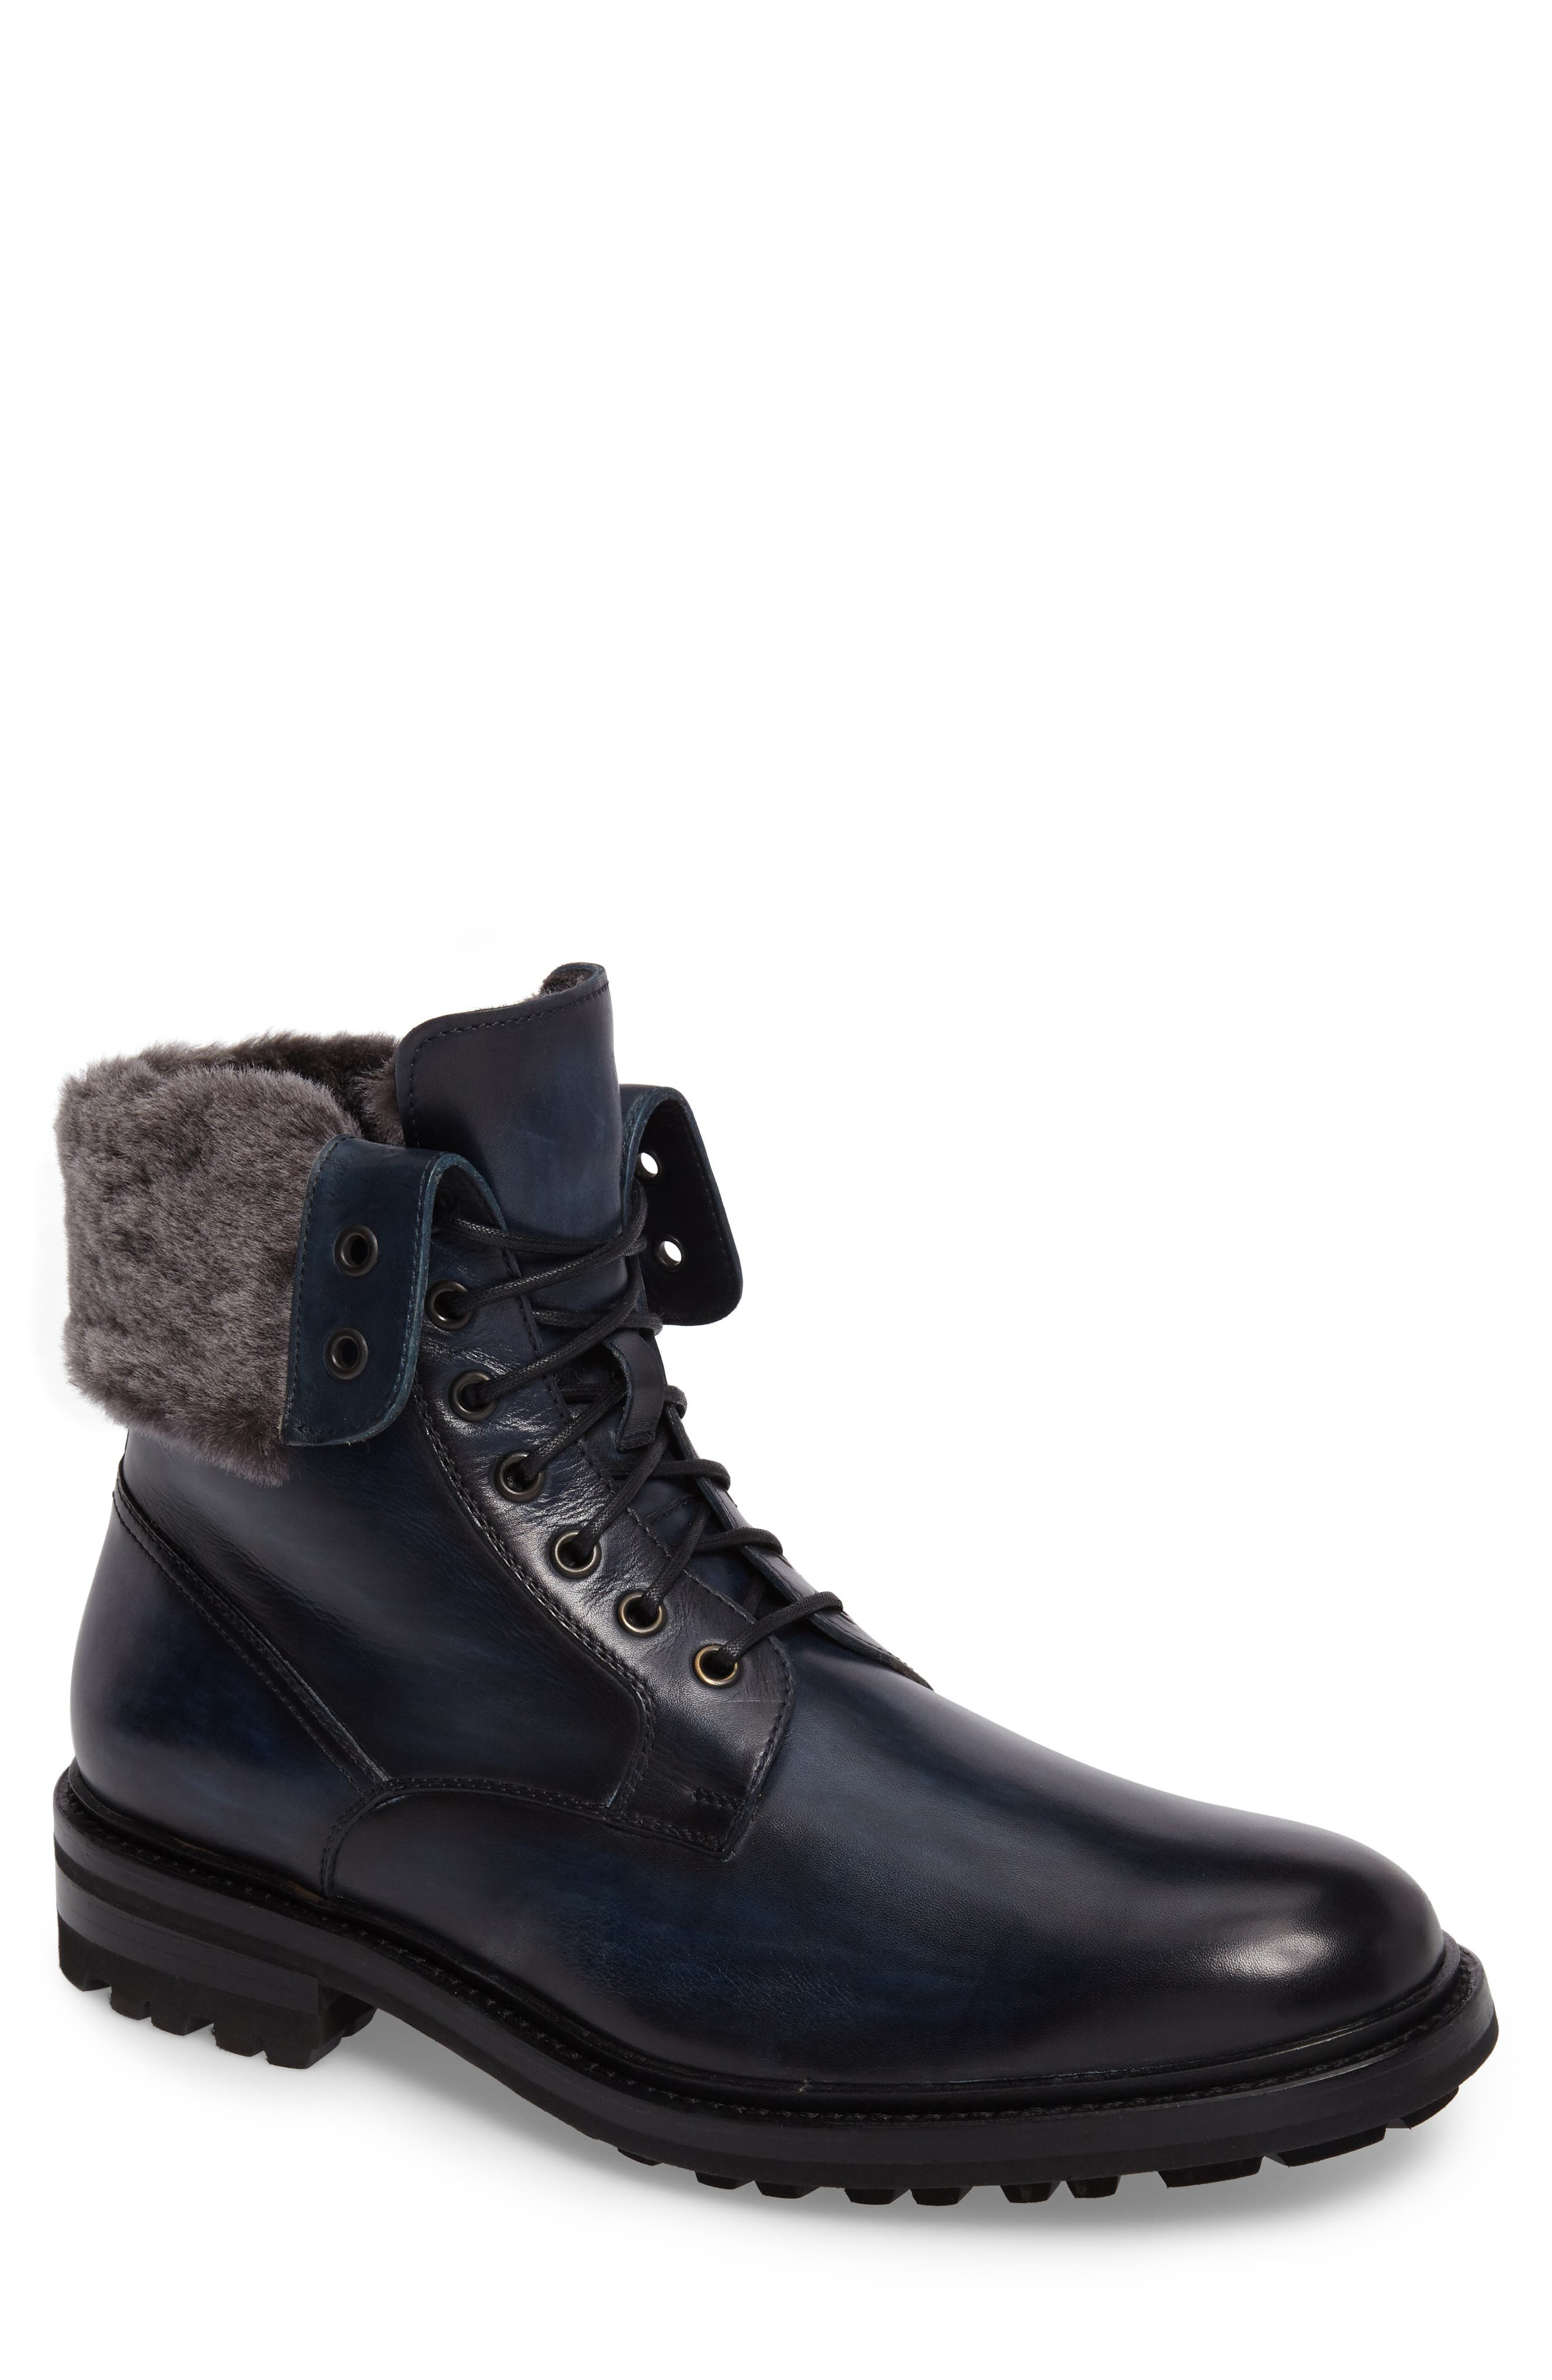 Paxton Plain Toe Boot with Genuine Rabbit Fur Cuff,                         Main,                         color, Navy Leather